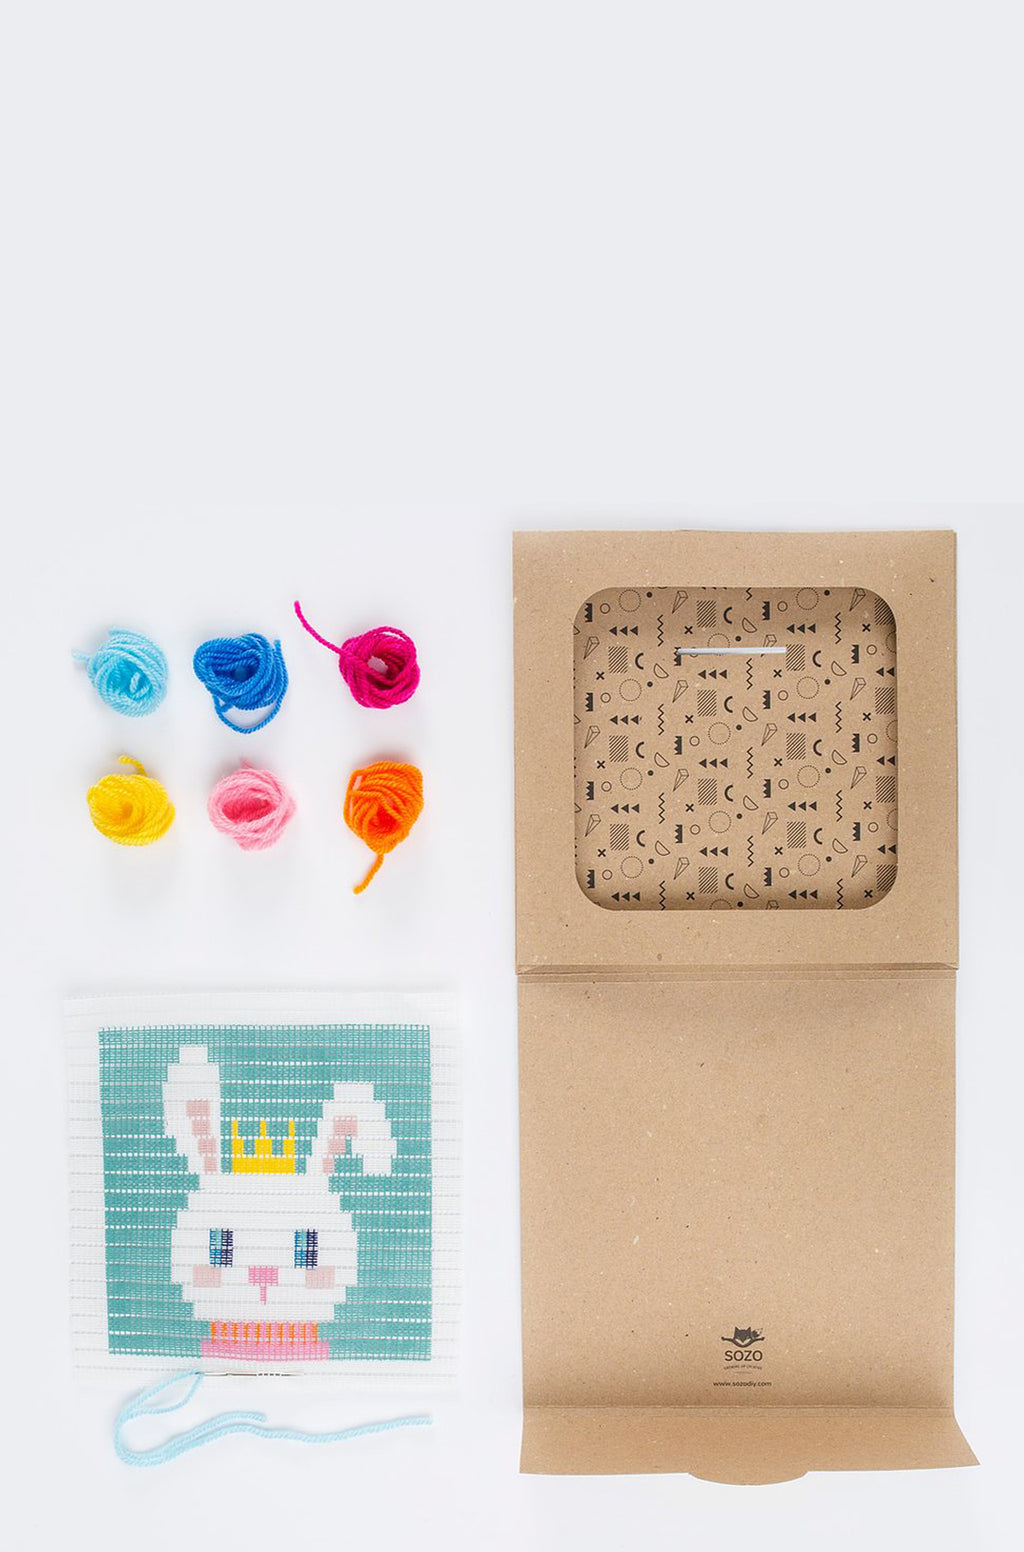 Bunny Embroidery Kit